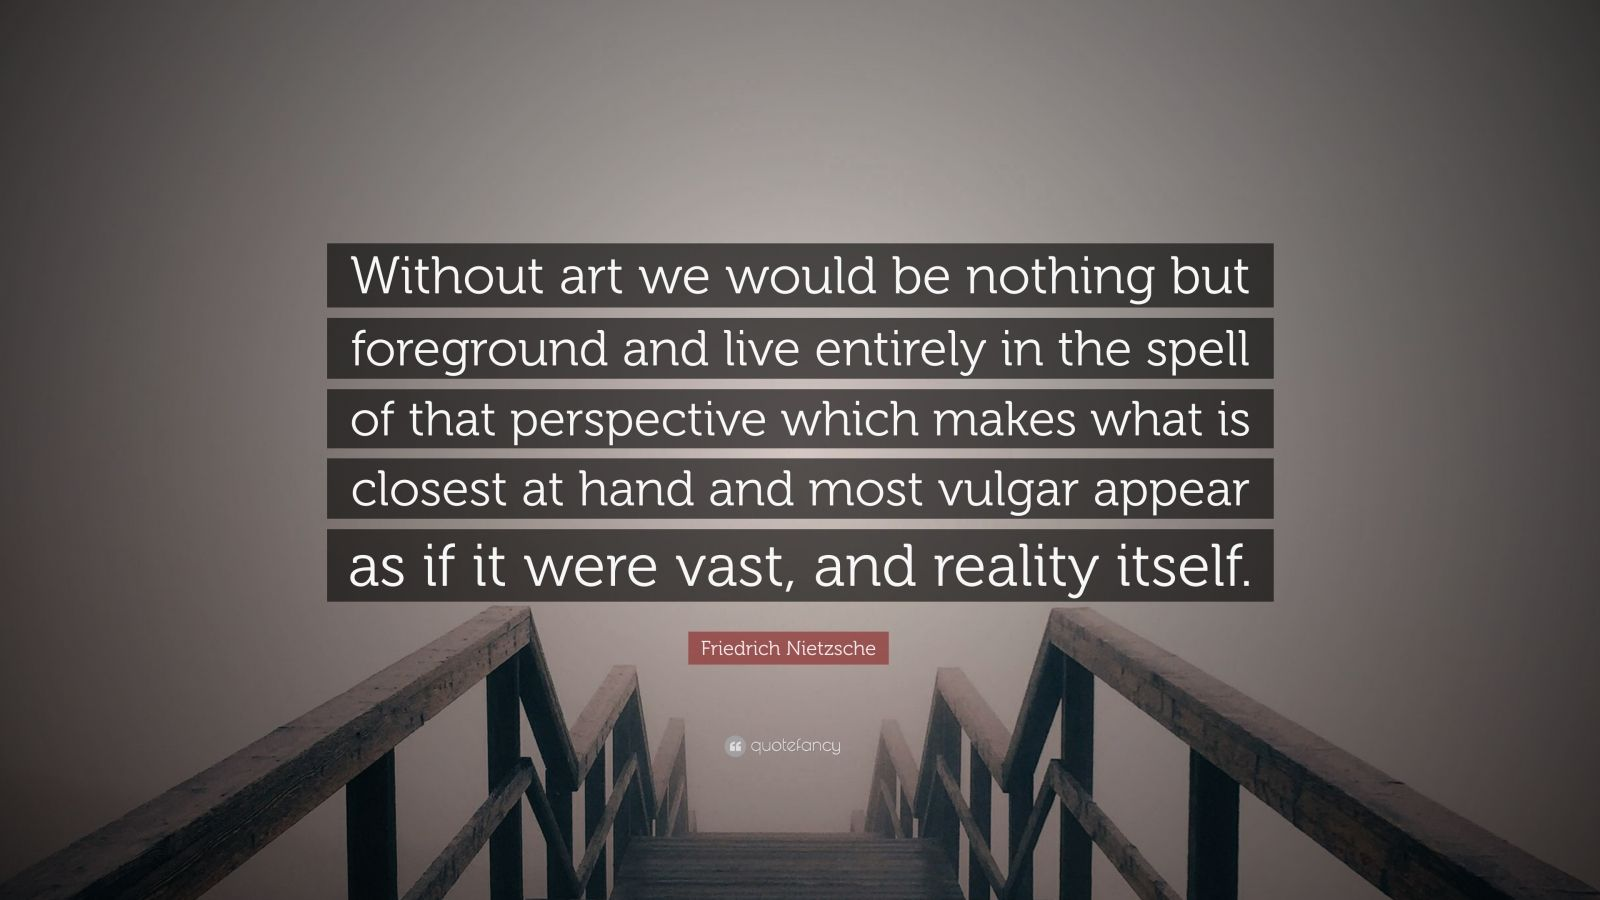 friedrich nietzsche another perspective on reality Richard wagner's influence on friedrich nietzsche his perspective on morality another important aspect of the ring cycle for nietzsche was the power of the.